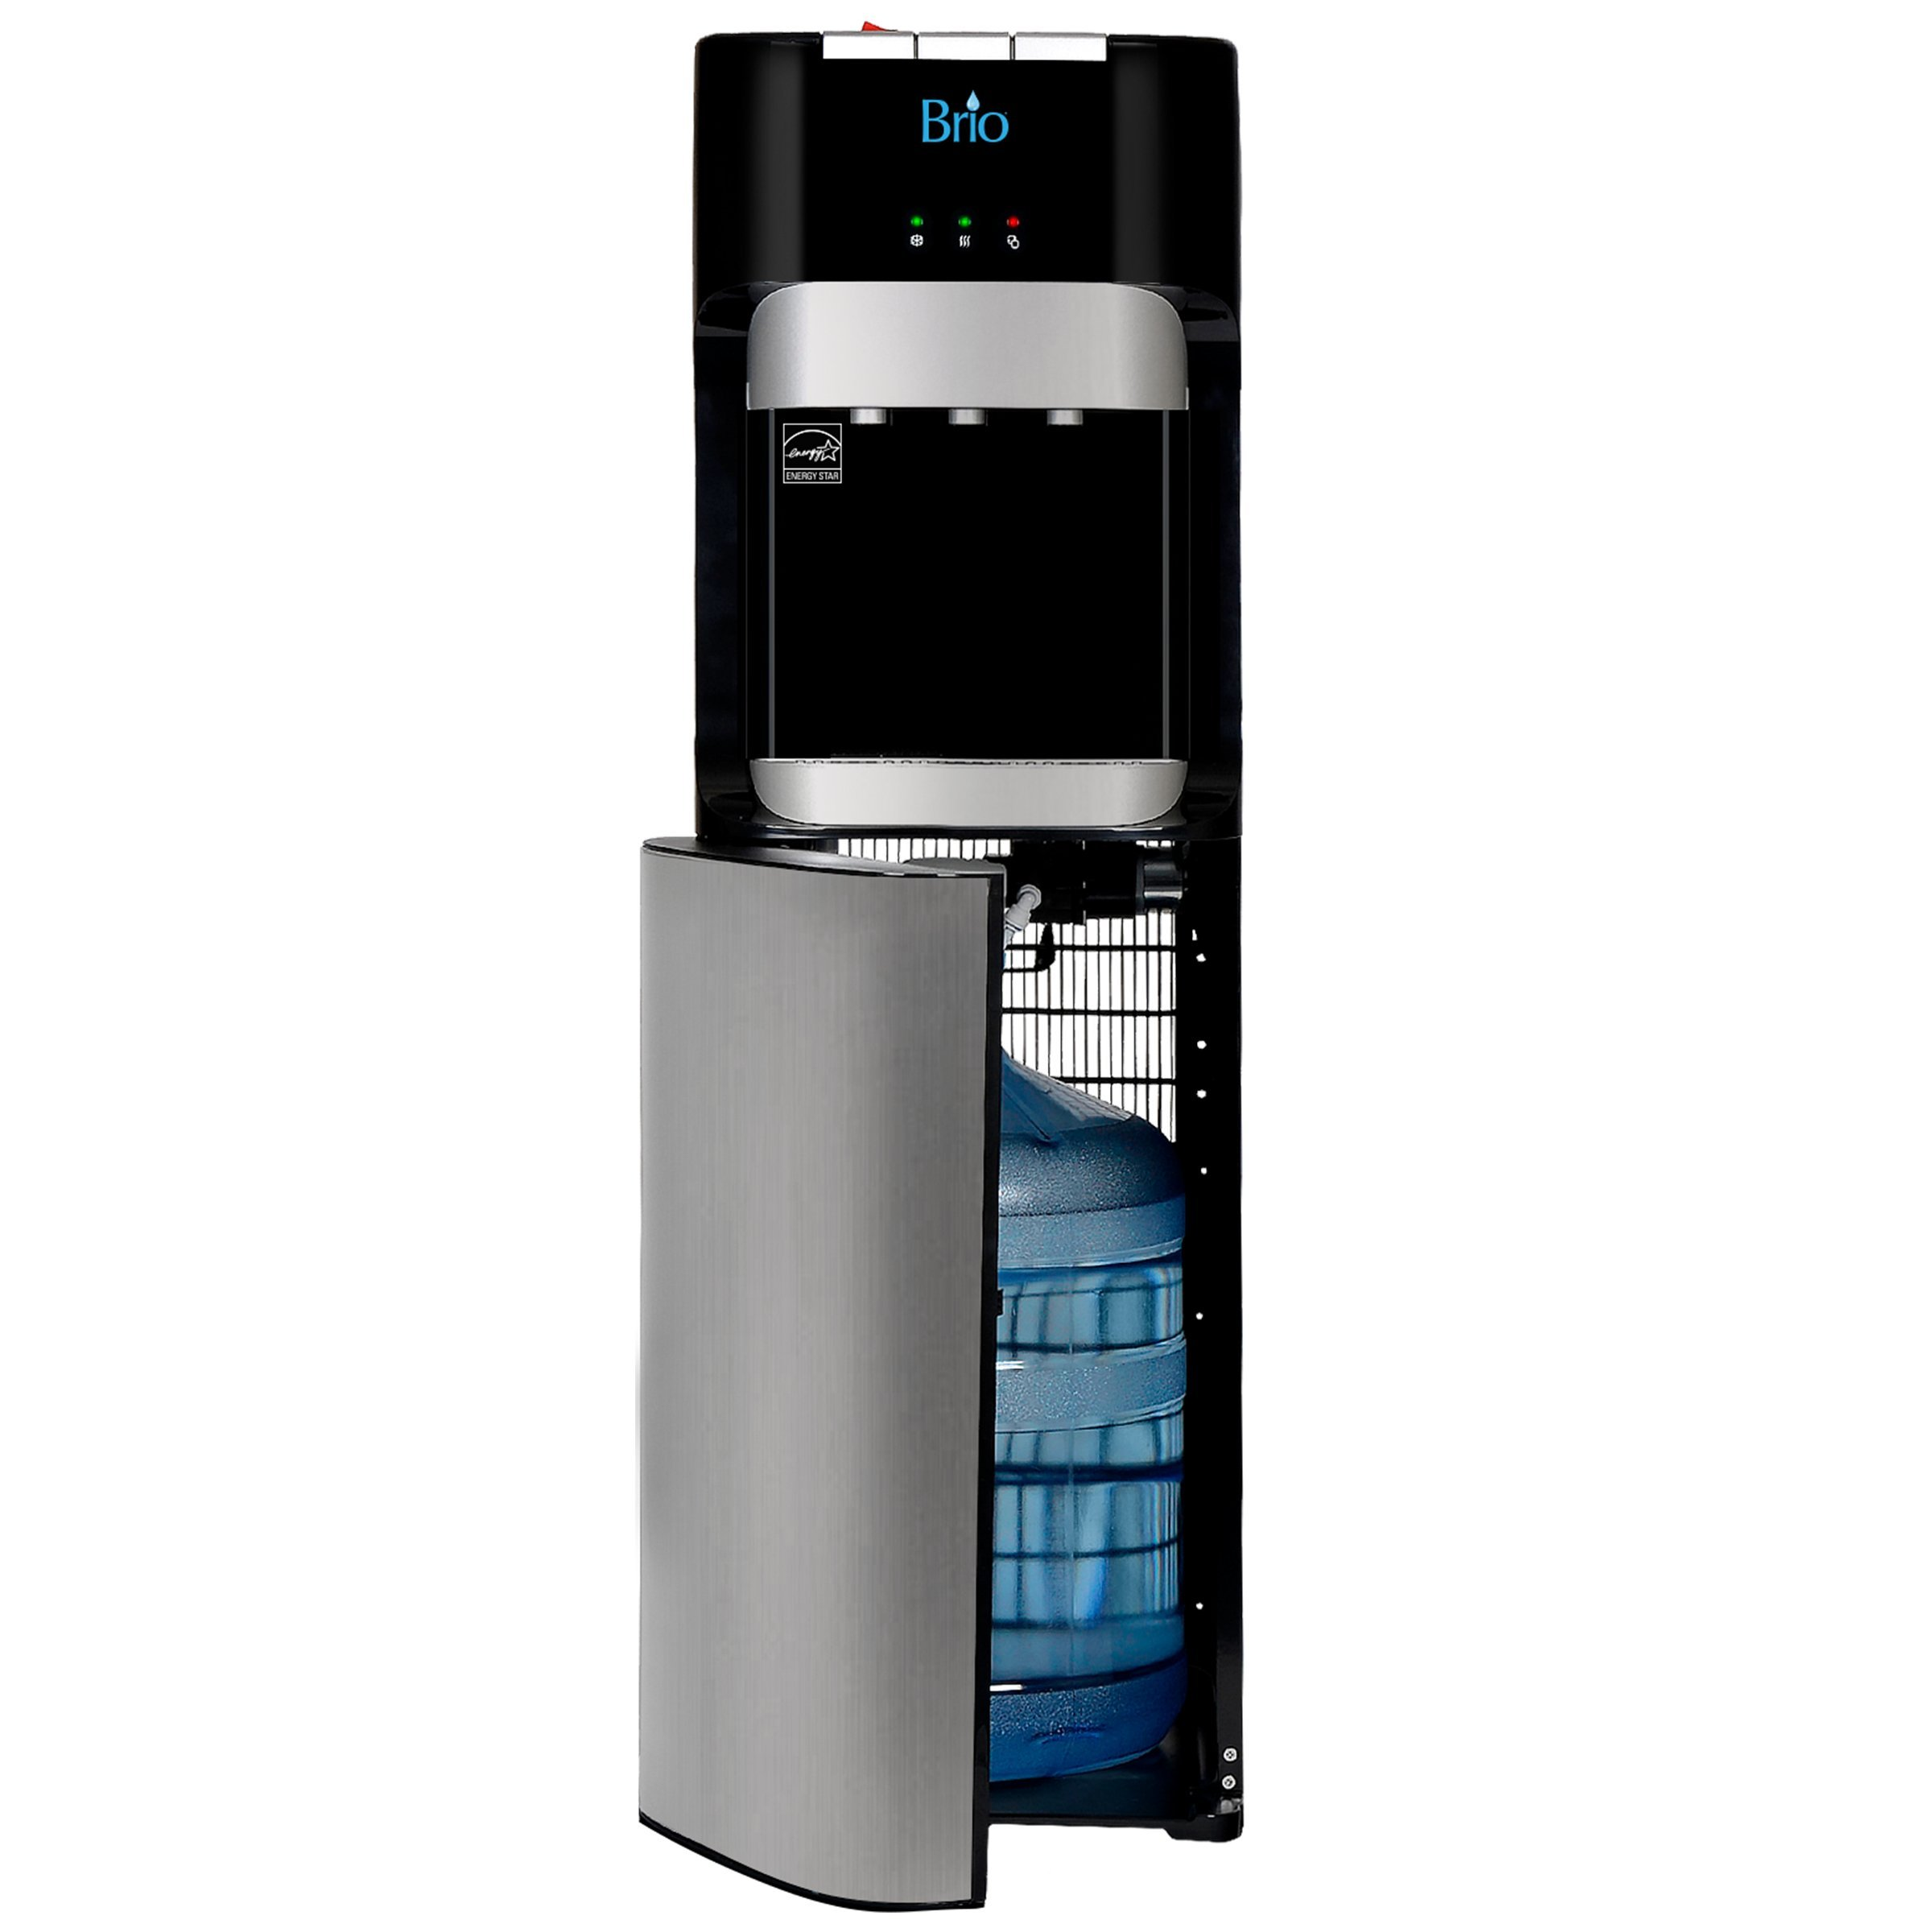 Brio Bottom Loading Water Cooler Water Dispenser - Essential Series - 3 Temperature Settings - Hot, Cold & Cool Water - UL/Energy Star Approved by Brio